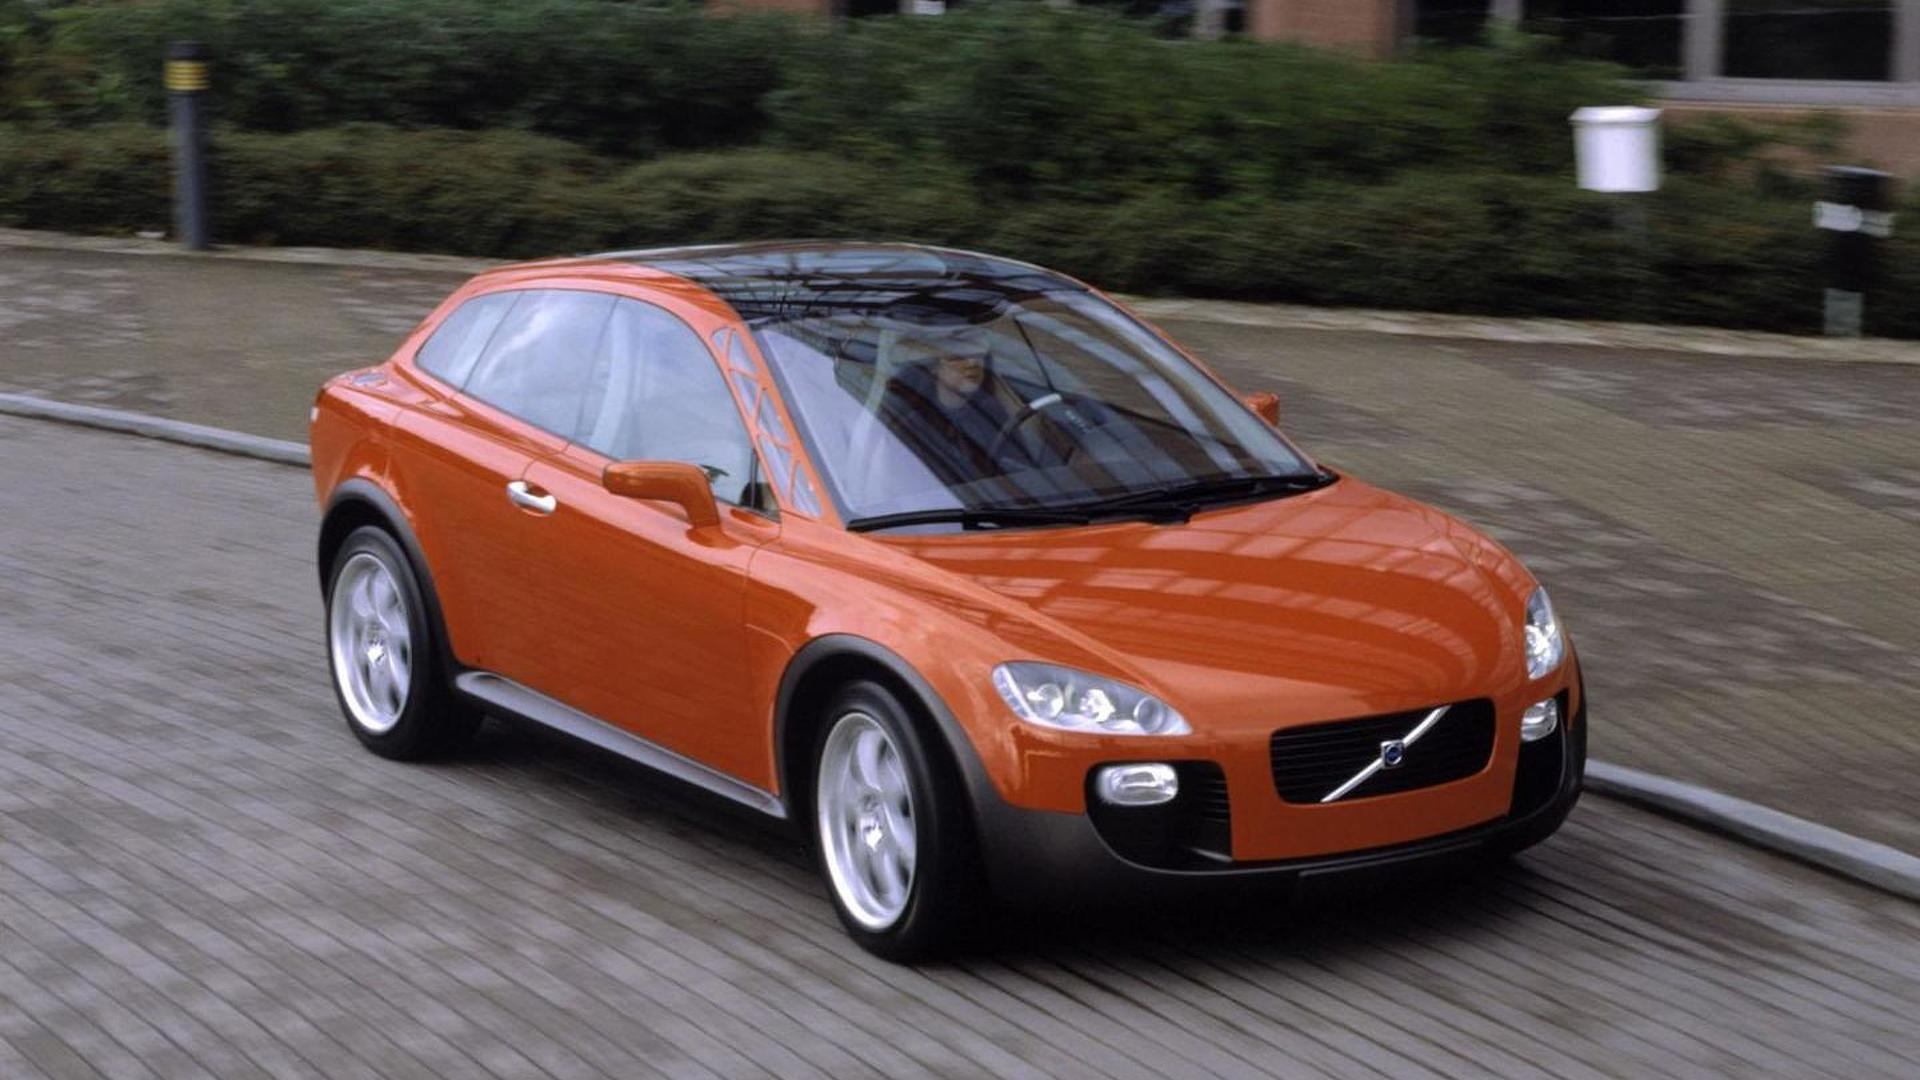 Volvo says farewell to the C30, will give the last model away [video]